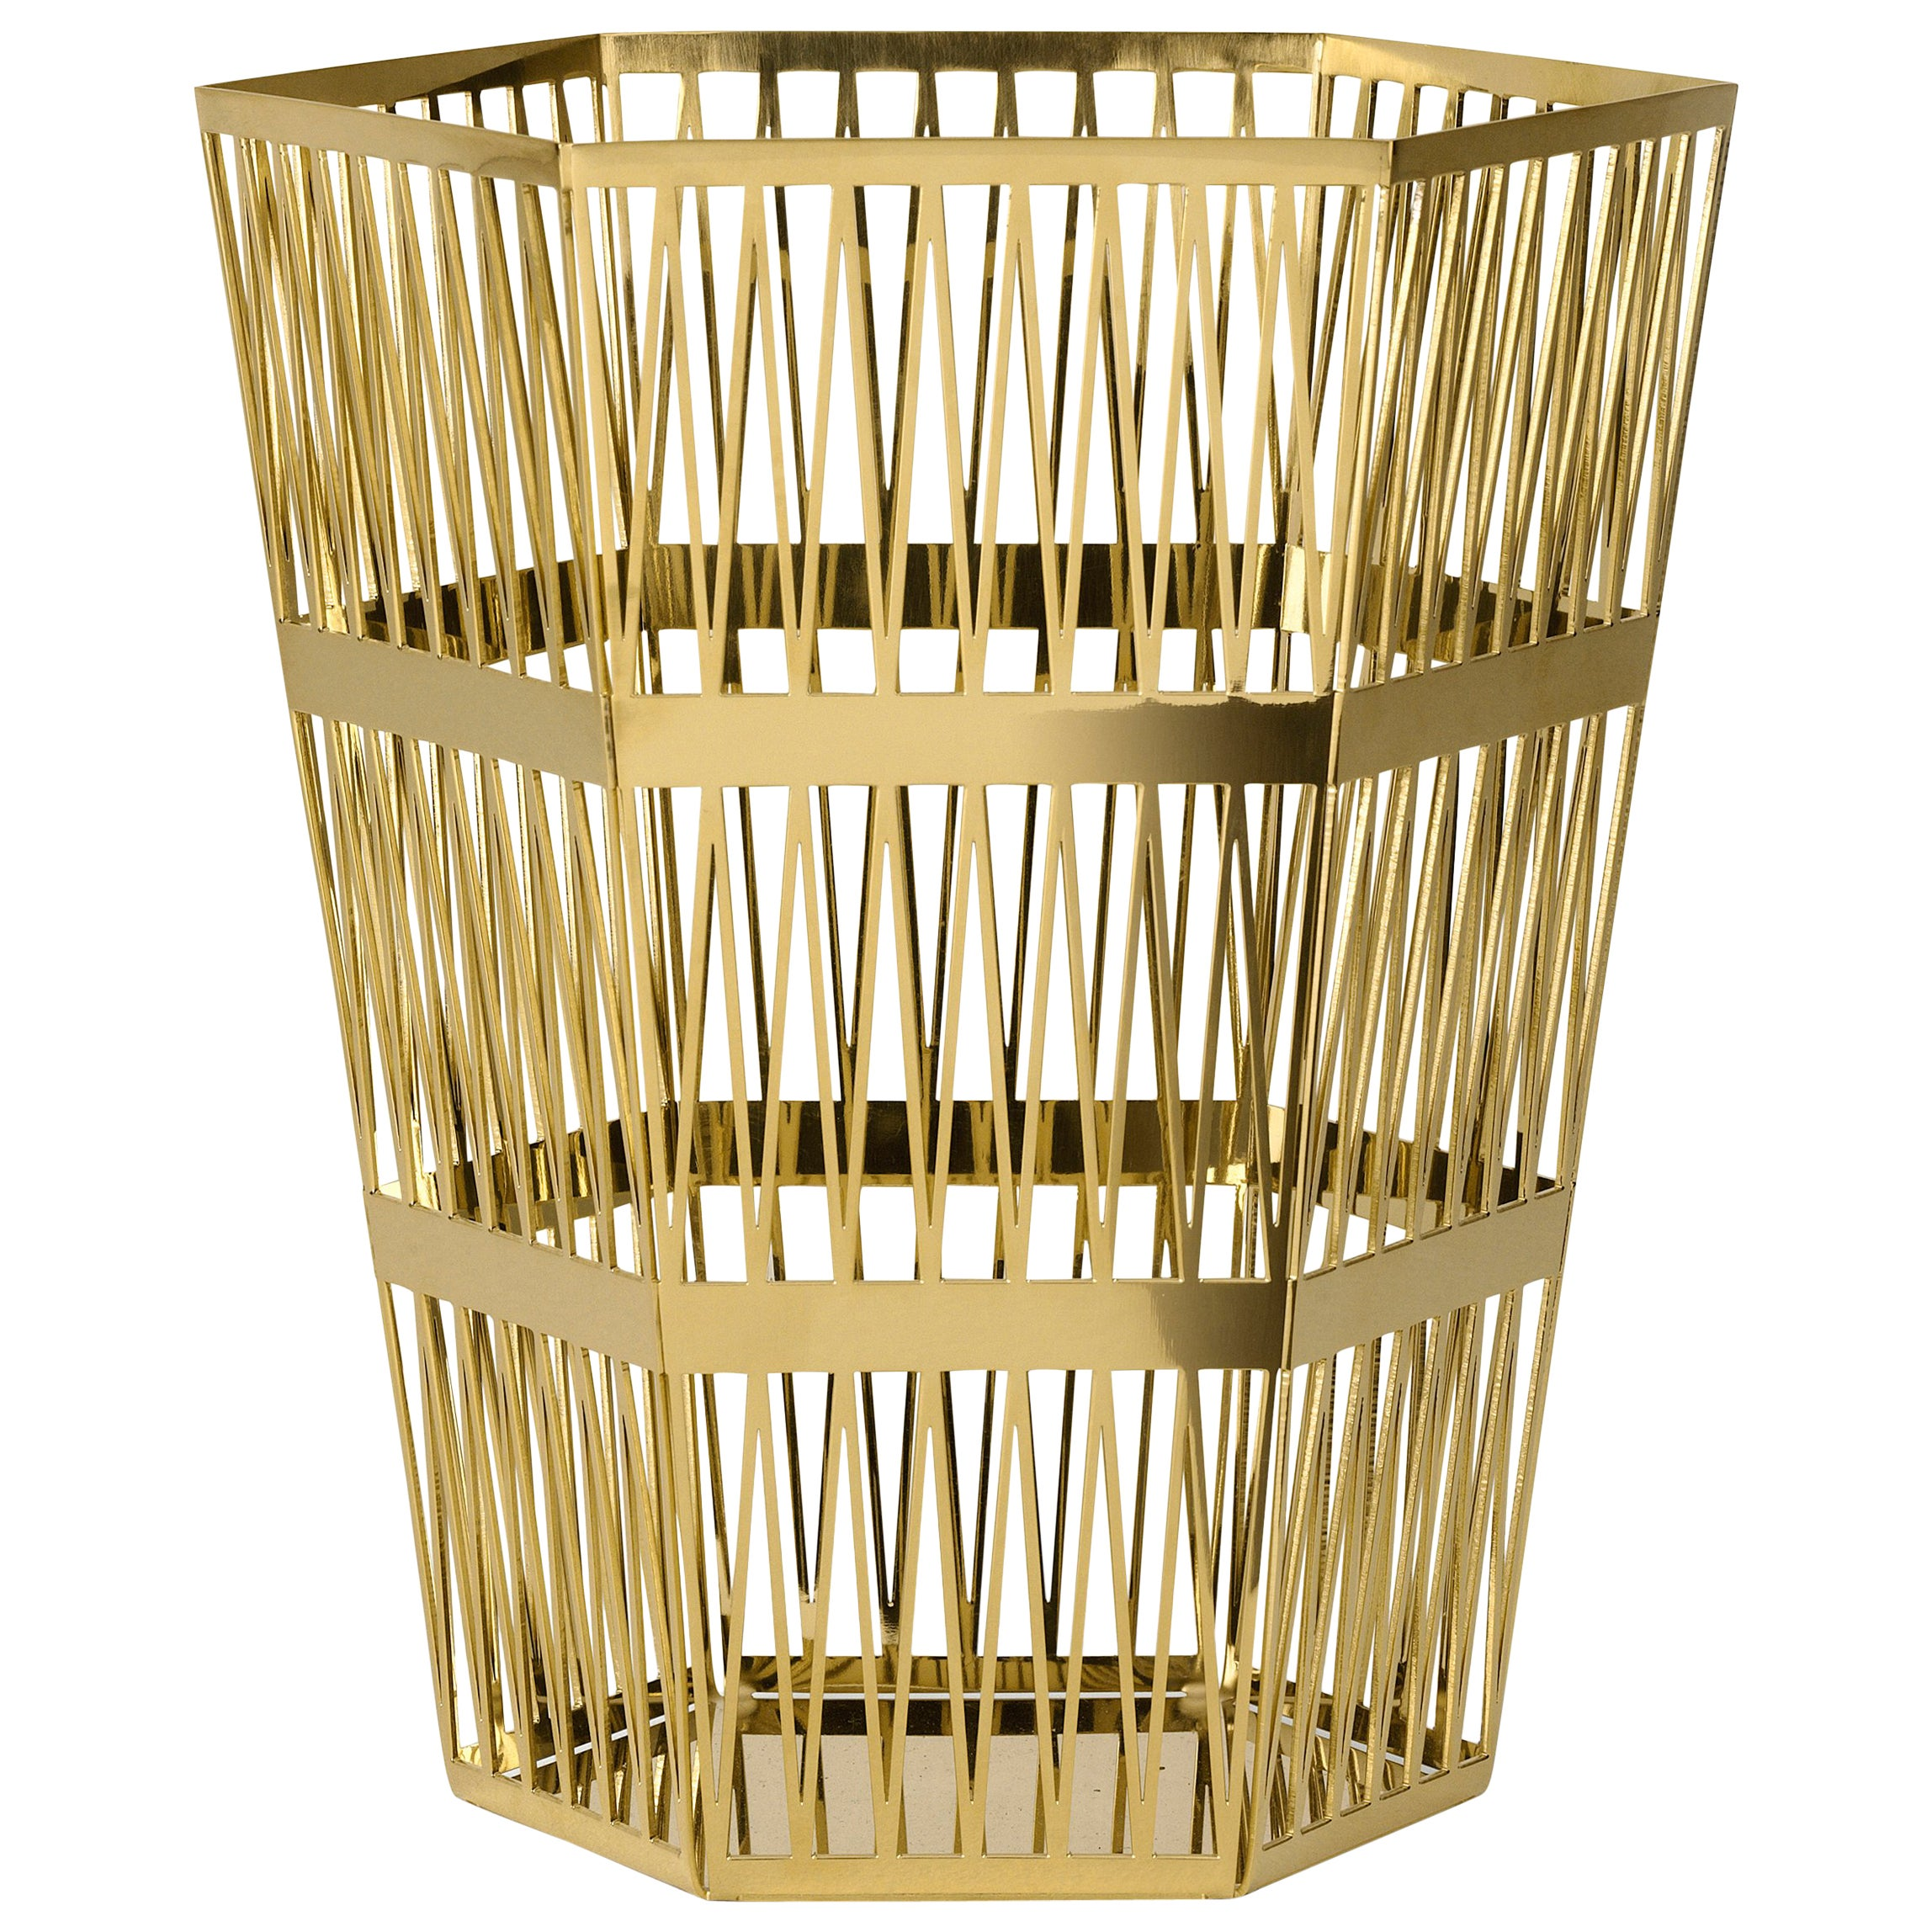 Ghidini 1961 Tip Top Small Paper Basket in Gold by Richard Hutten